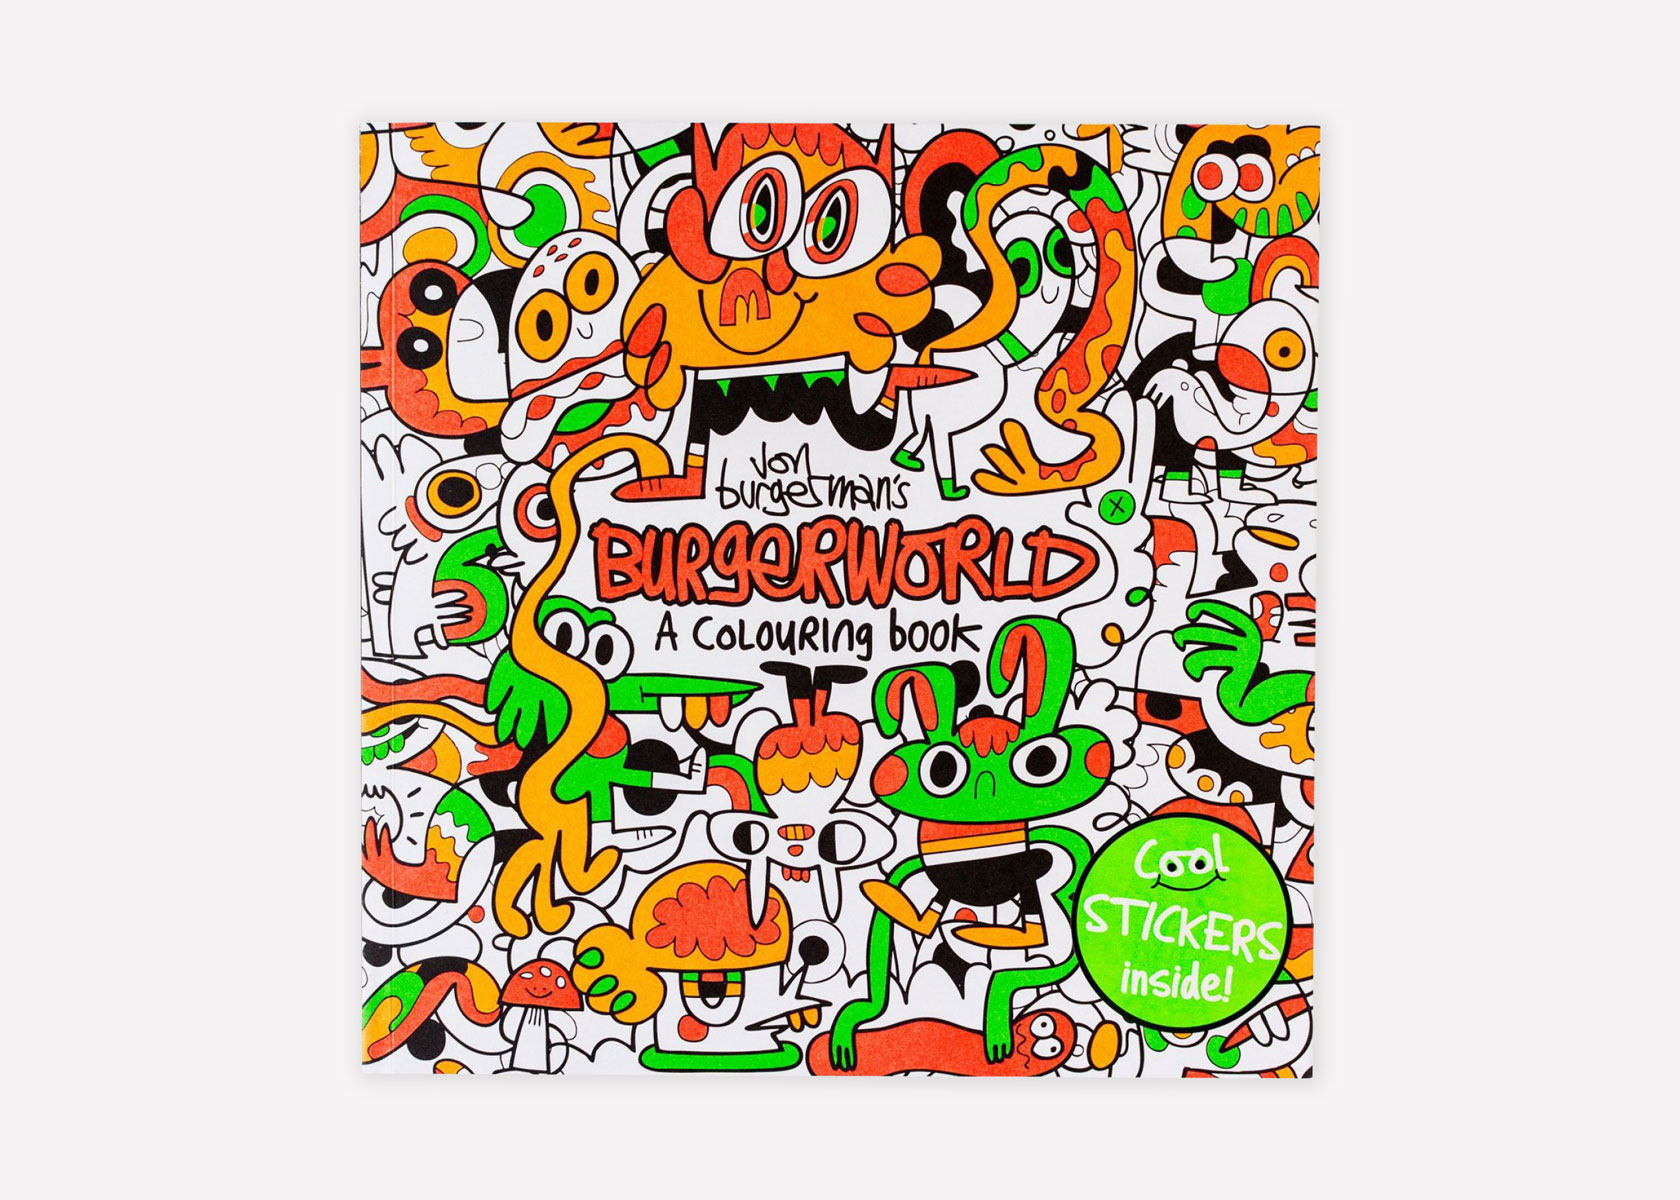 The cover of Burgerman's coloring book of the intricate land of Burgerworld. Image courtesy of Jon Burgerman